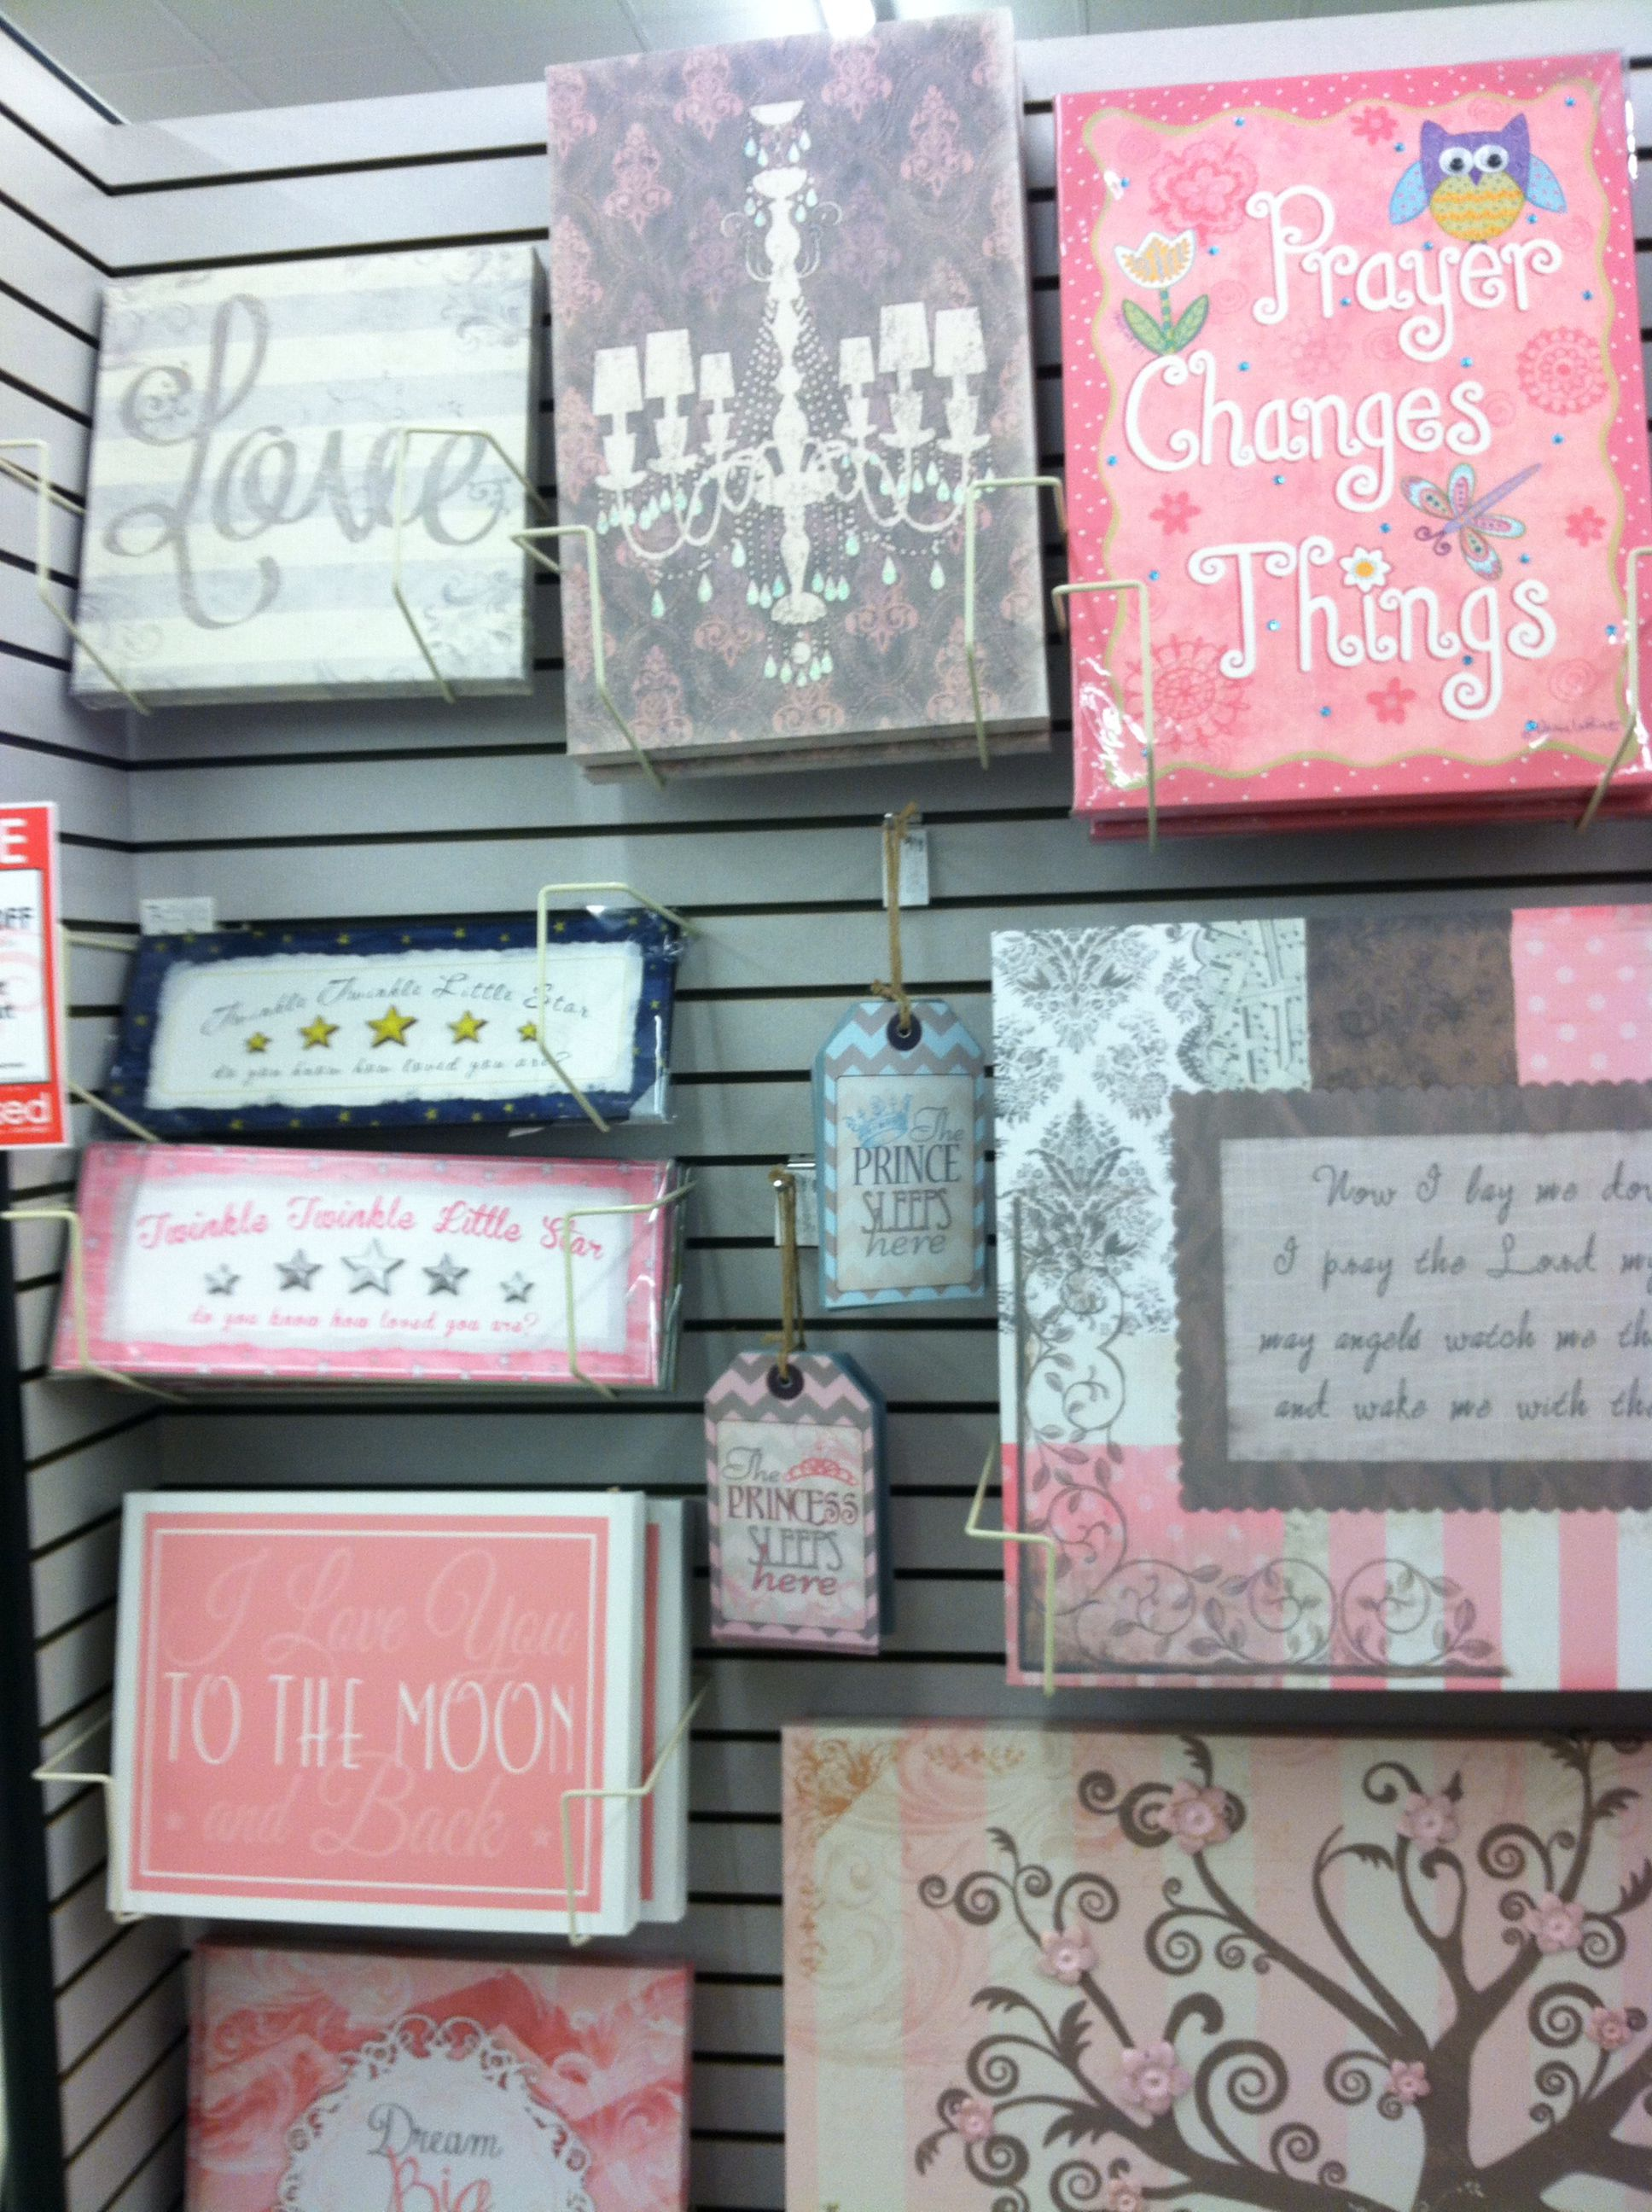 Girls Room Decor At Hobby Lobby Diy Gifts For Friends Girls Room Decor Diy Gifts